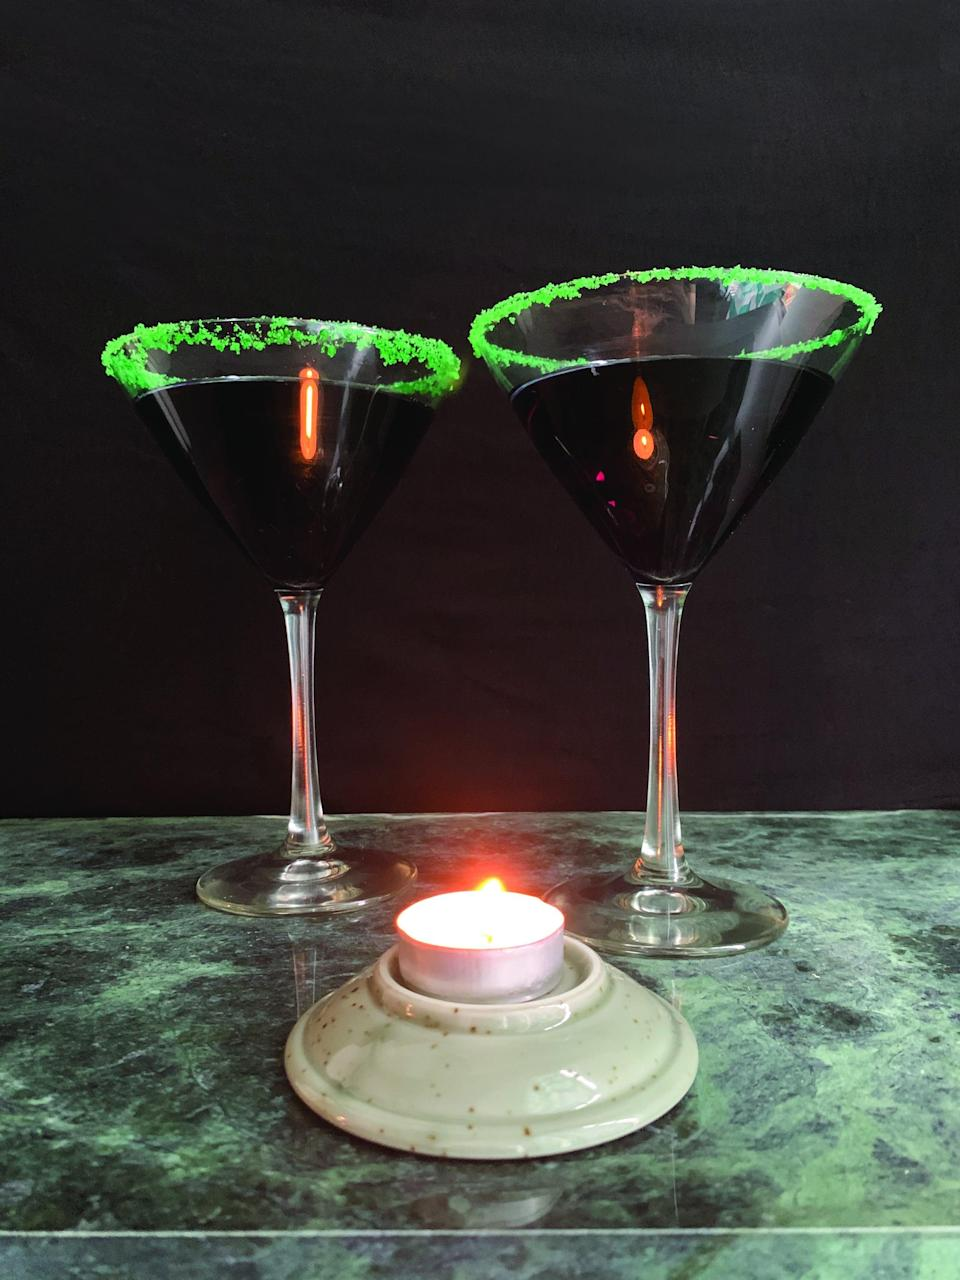 <p><strong>Serves:</strong> 1   <strong>Prep Time:</strong> 10 minutes</p> <p><strong>Ingredients:</strong><br> 1/8 cup sugar<br> food coloring<br> lime wedge<br> 2 ounces Captain Morgan Black Rum<br> 1/2 ounce dry vermouth<br> blackberry, for garnish<br> 1/4 ounce Bacardi 151</p> <p><strong>Directions:</strong></p> <ol> <li>Chill a cocktail glass.</li> <li>Pour the sugar into a small resealable storage bag.</li> <li>Add a few drops of the food coloring to turn the sugar the desired color. Shake the bag well to distribute the coloring throughout the sugar.</li> <li>Dump the bag contents onto a plate.</li> <li>Use a lime wedge to rim the cocktail glass.</li> <li>Dip the rim of the glass in the colored sugar so it is evenly coated with the sugar.</li> <li>Fill a cocktail shaker with ice. Add the black rum and vermouth and shake well.</li> <li>Strain the cocktail into the rimmed glass.</li> <li>Garnish with a blackberry.</li> <li>Optional: Drizzle the Bacardi 151 onto the top of the cocktail and light on fire. Let it burn out before you drink!</li> </ol>